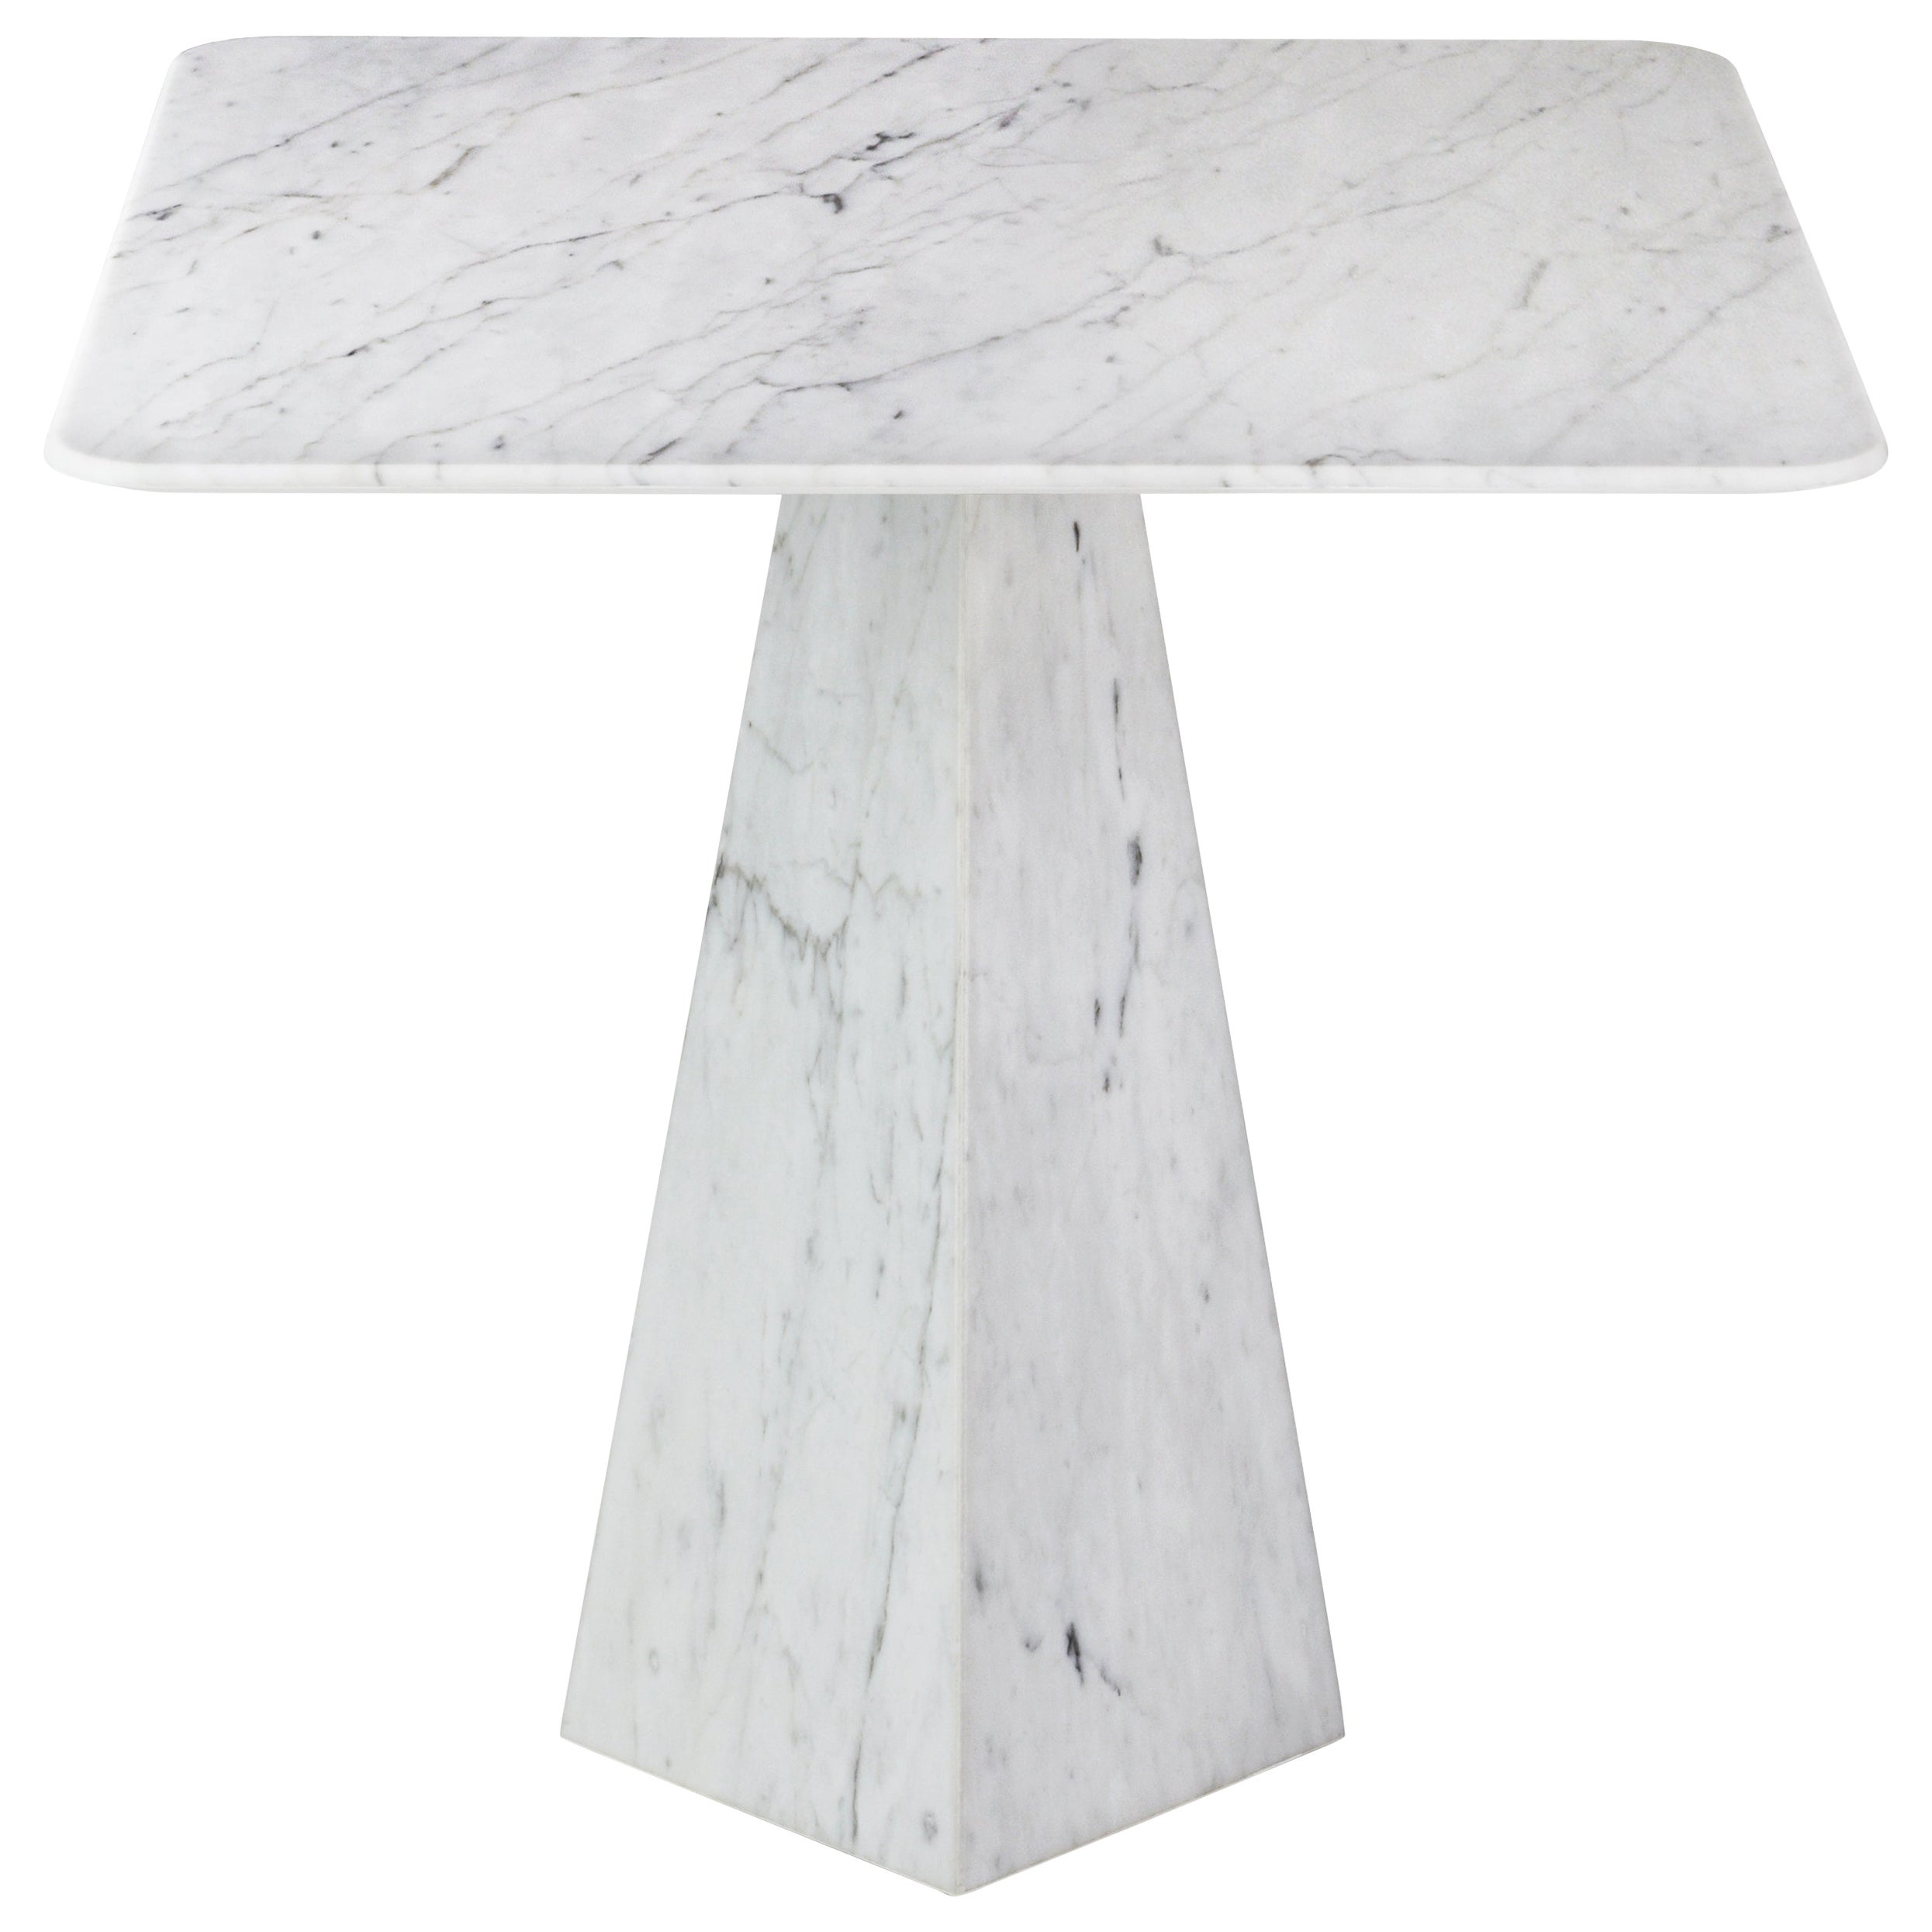 Ultra Thin Squared White Carrara Marble Side Table